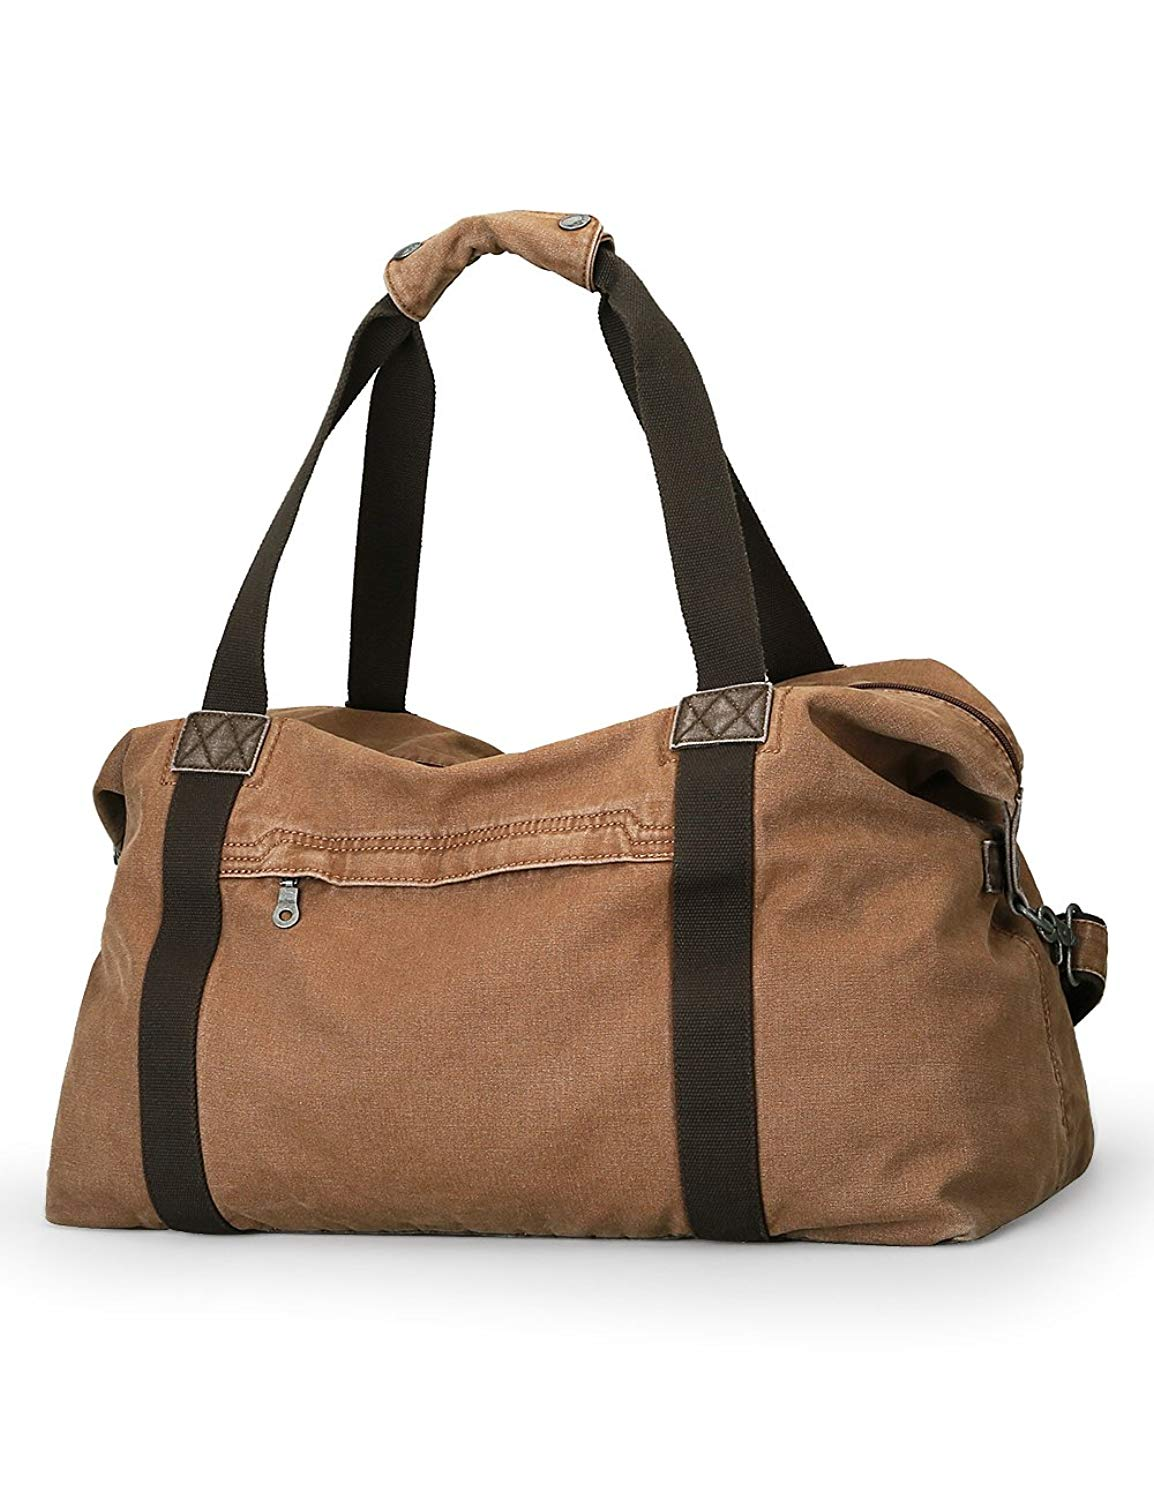 Muzee Oversized Classic Vintage Canvas Travel Duffel Hand Bag Weekender Bag Travel Tote Luggage for men or women